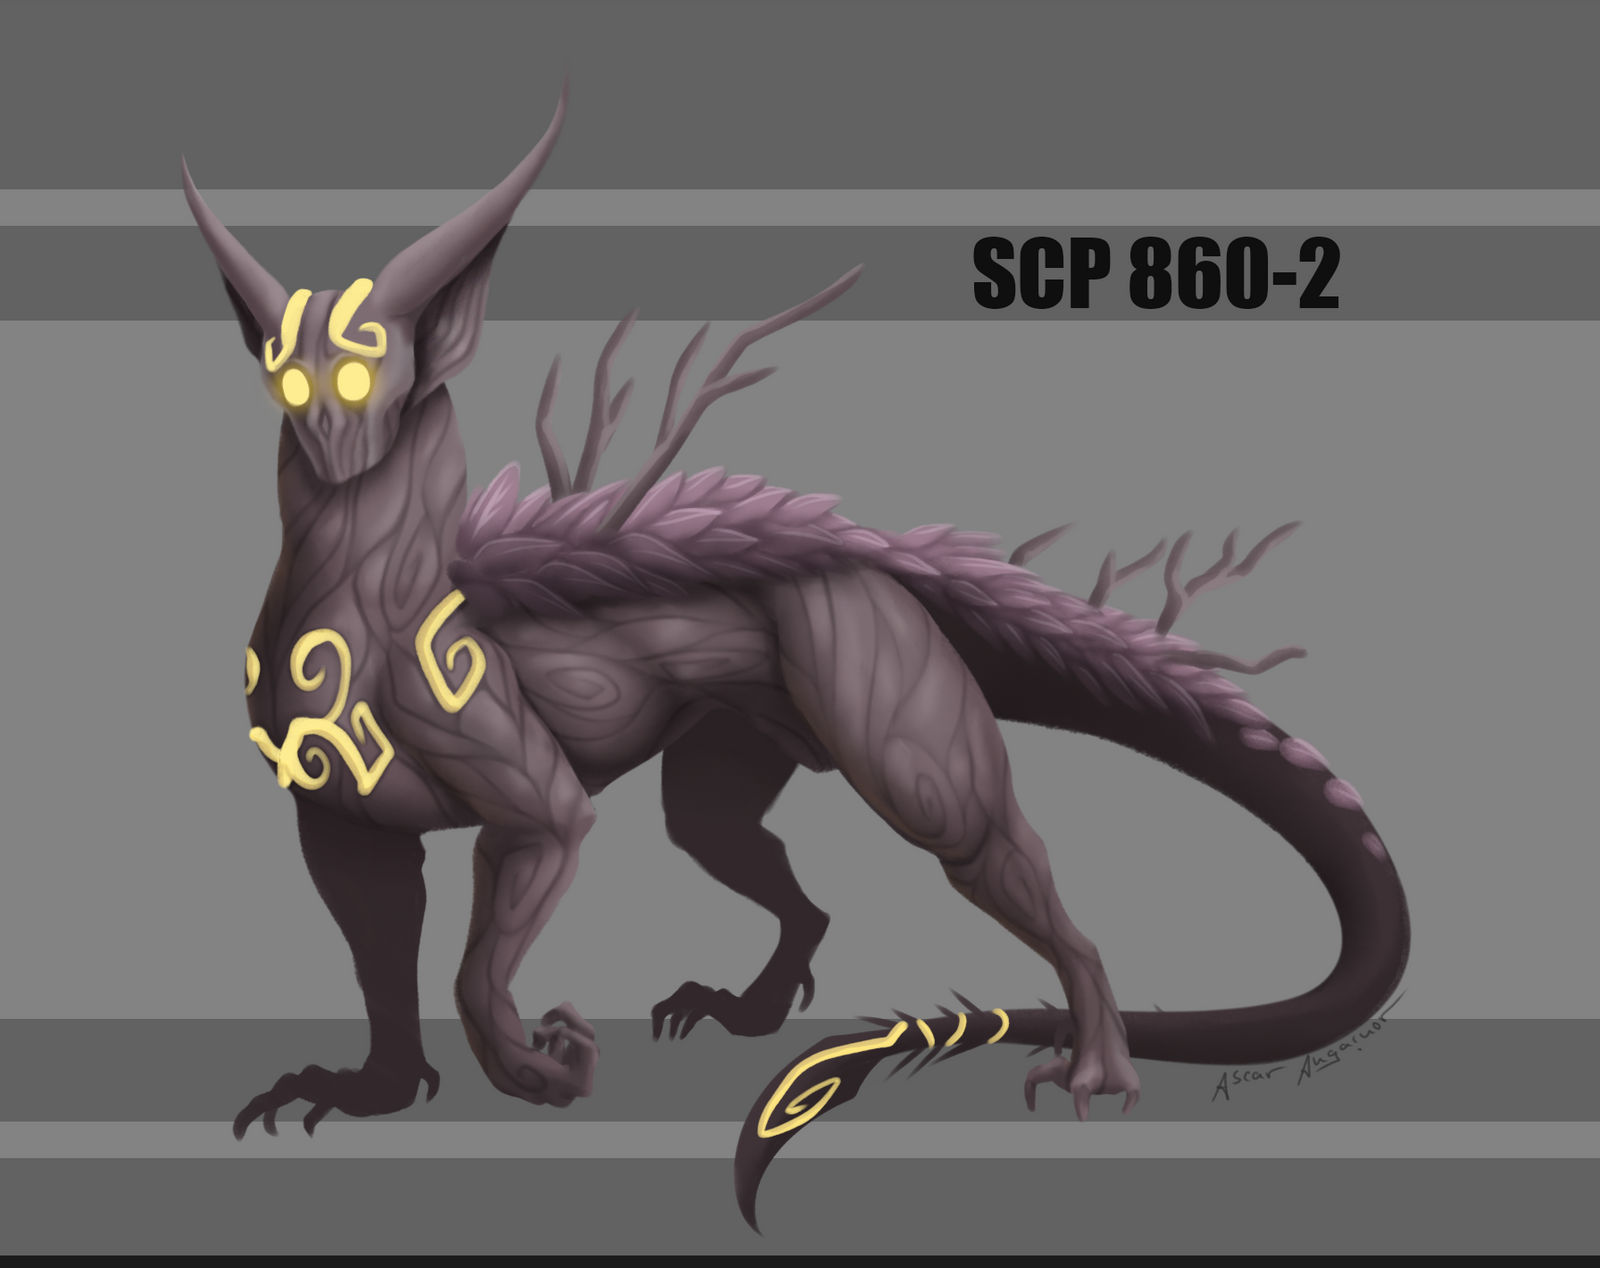 Scp 860